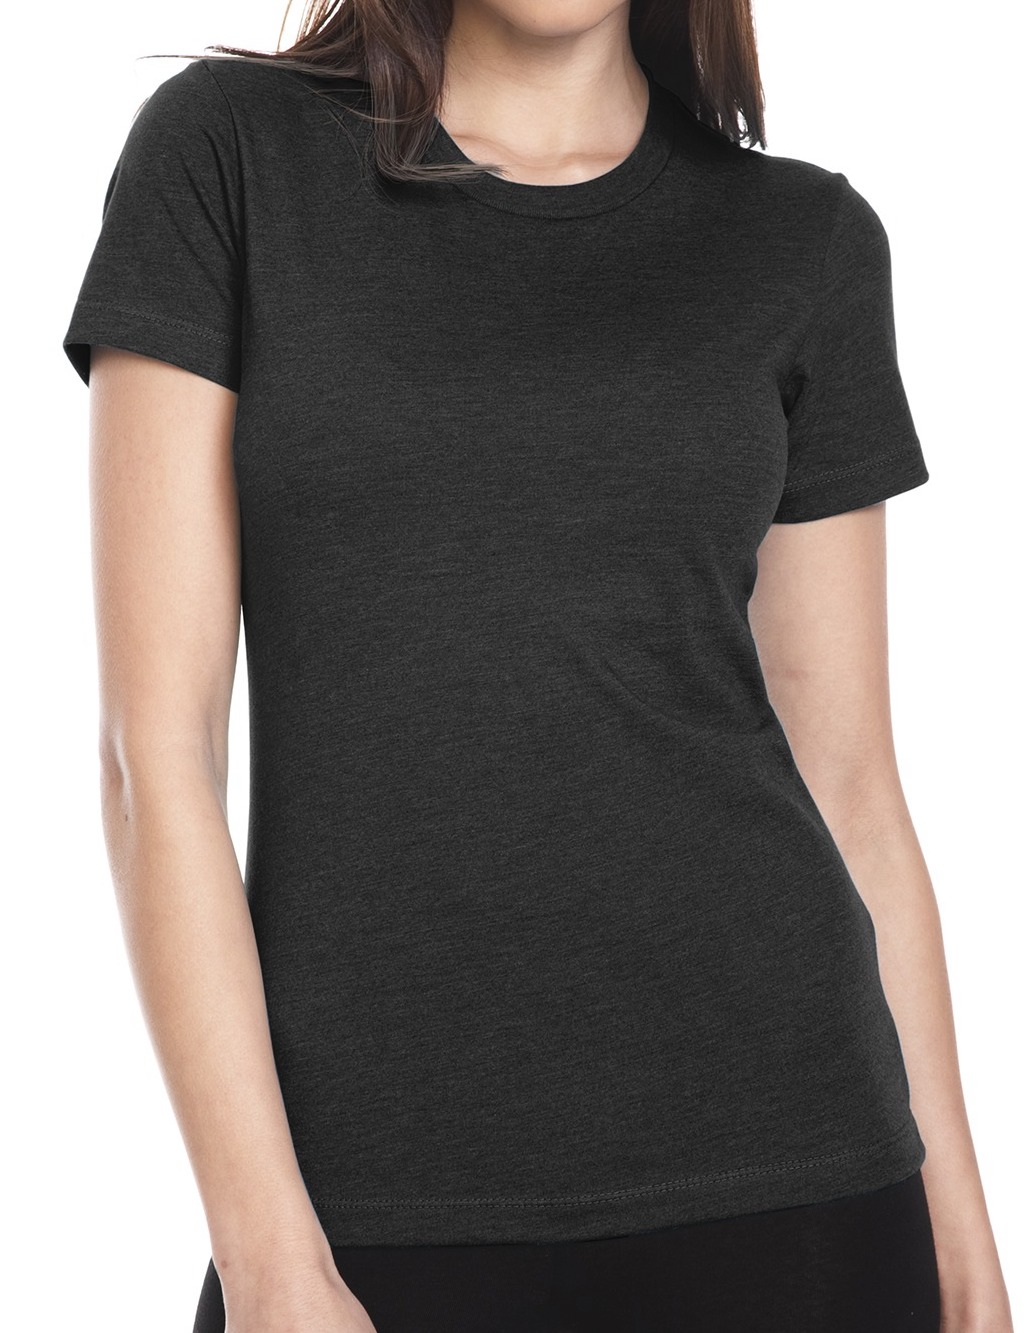 Women's CVC crew neck (cotton, rayon, polyester, great fit and very soft, $$).